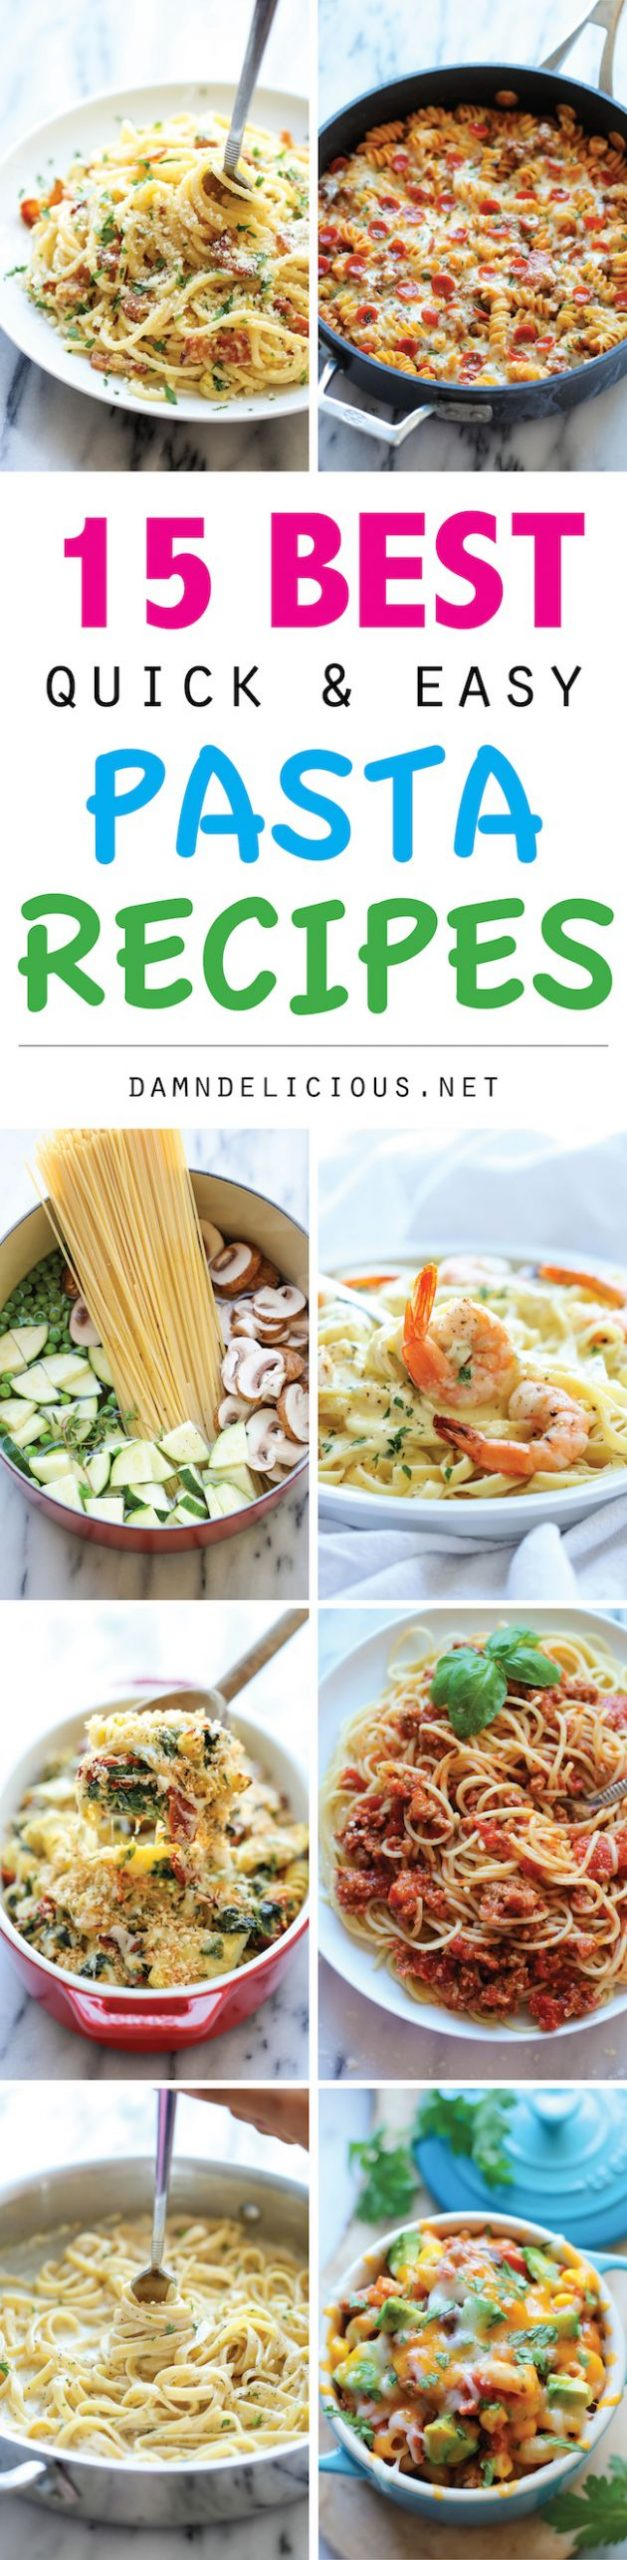 11 Best Quick and Easy Pasta Recipes - Damn Delicious